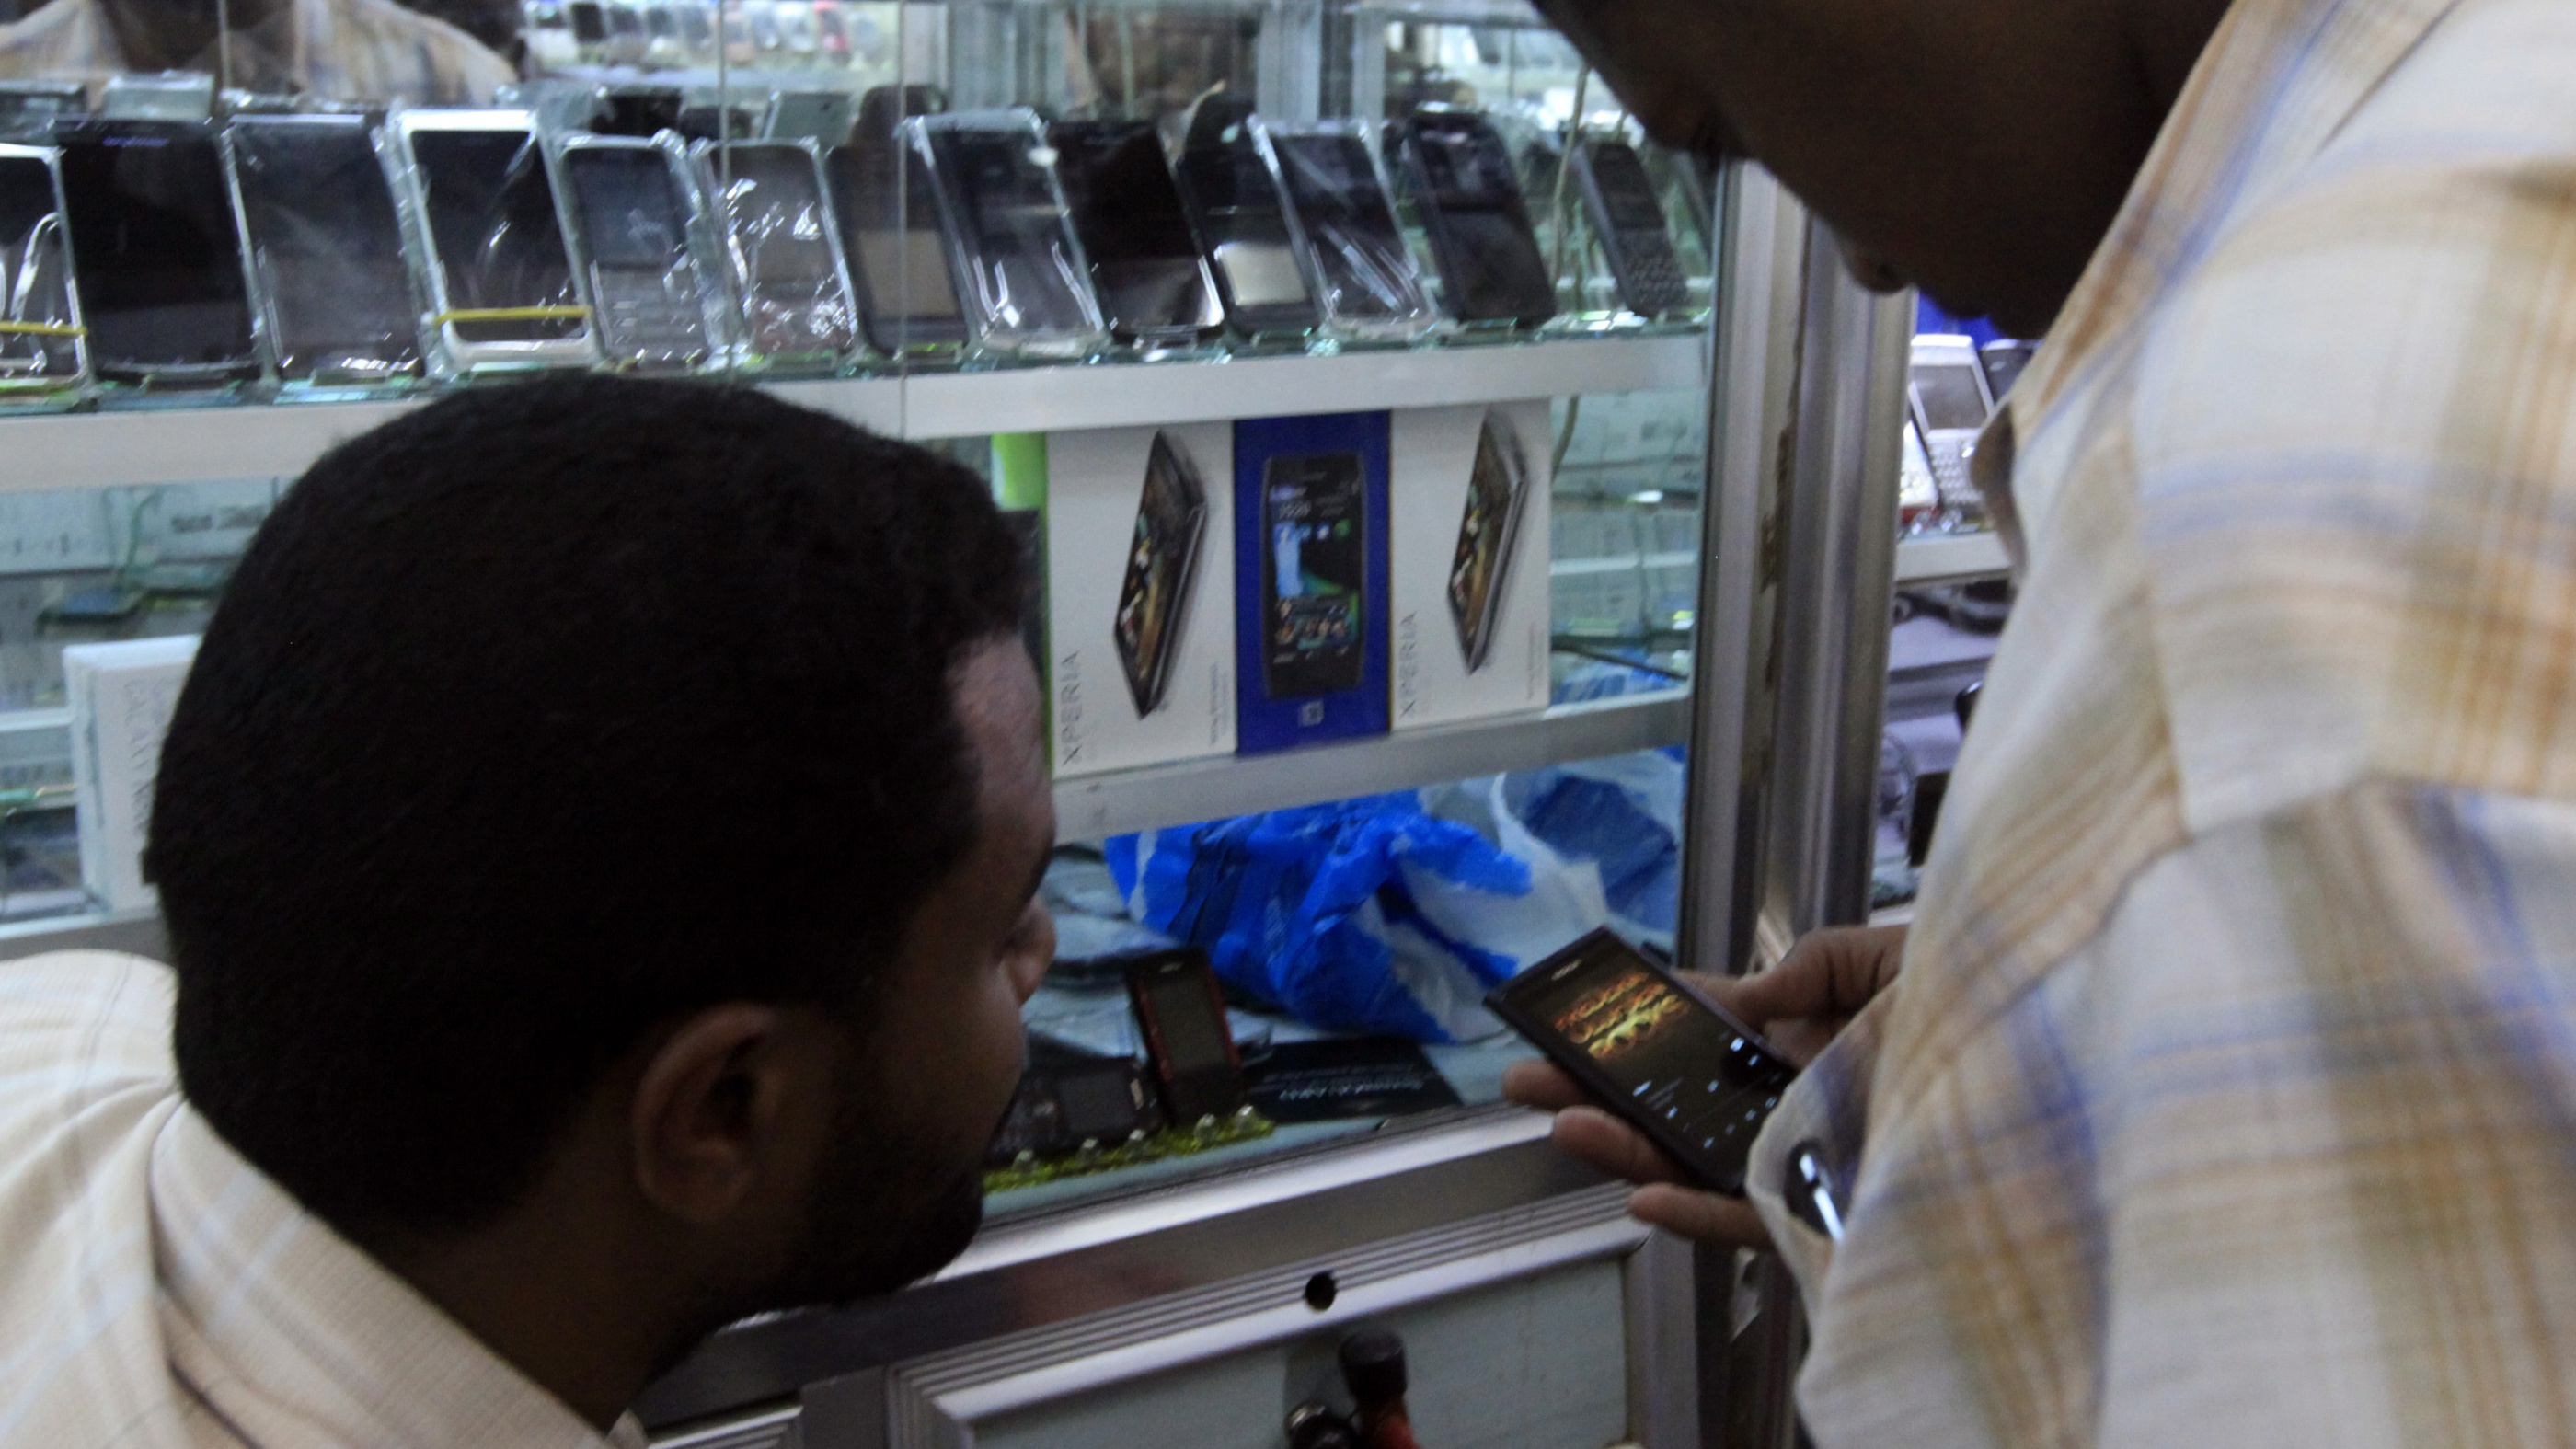 A vendor shows a cell phone to a customer in his store in Khartoum, Sudan.